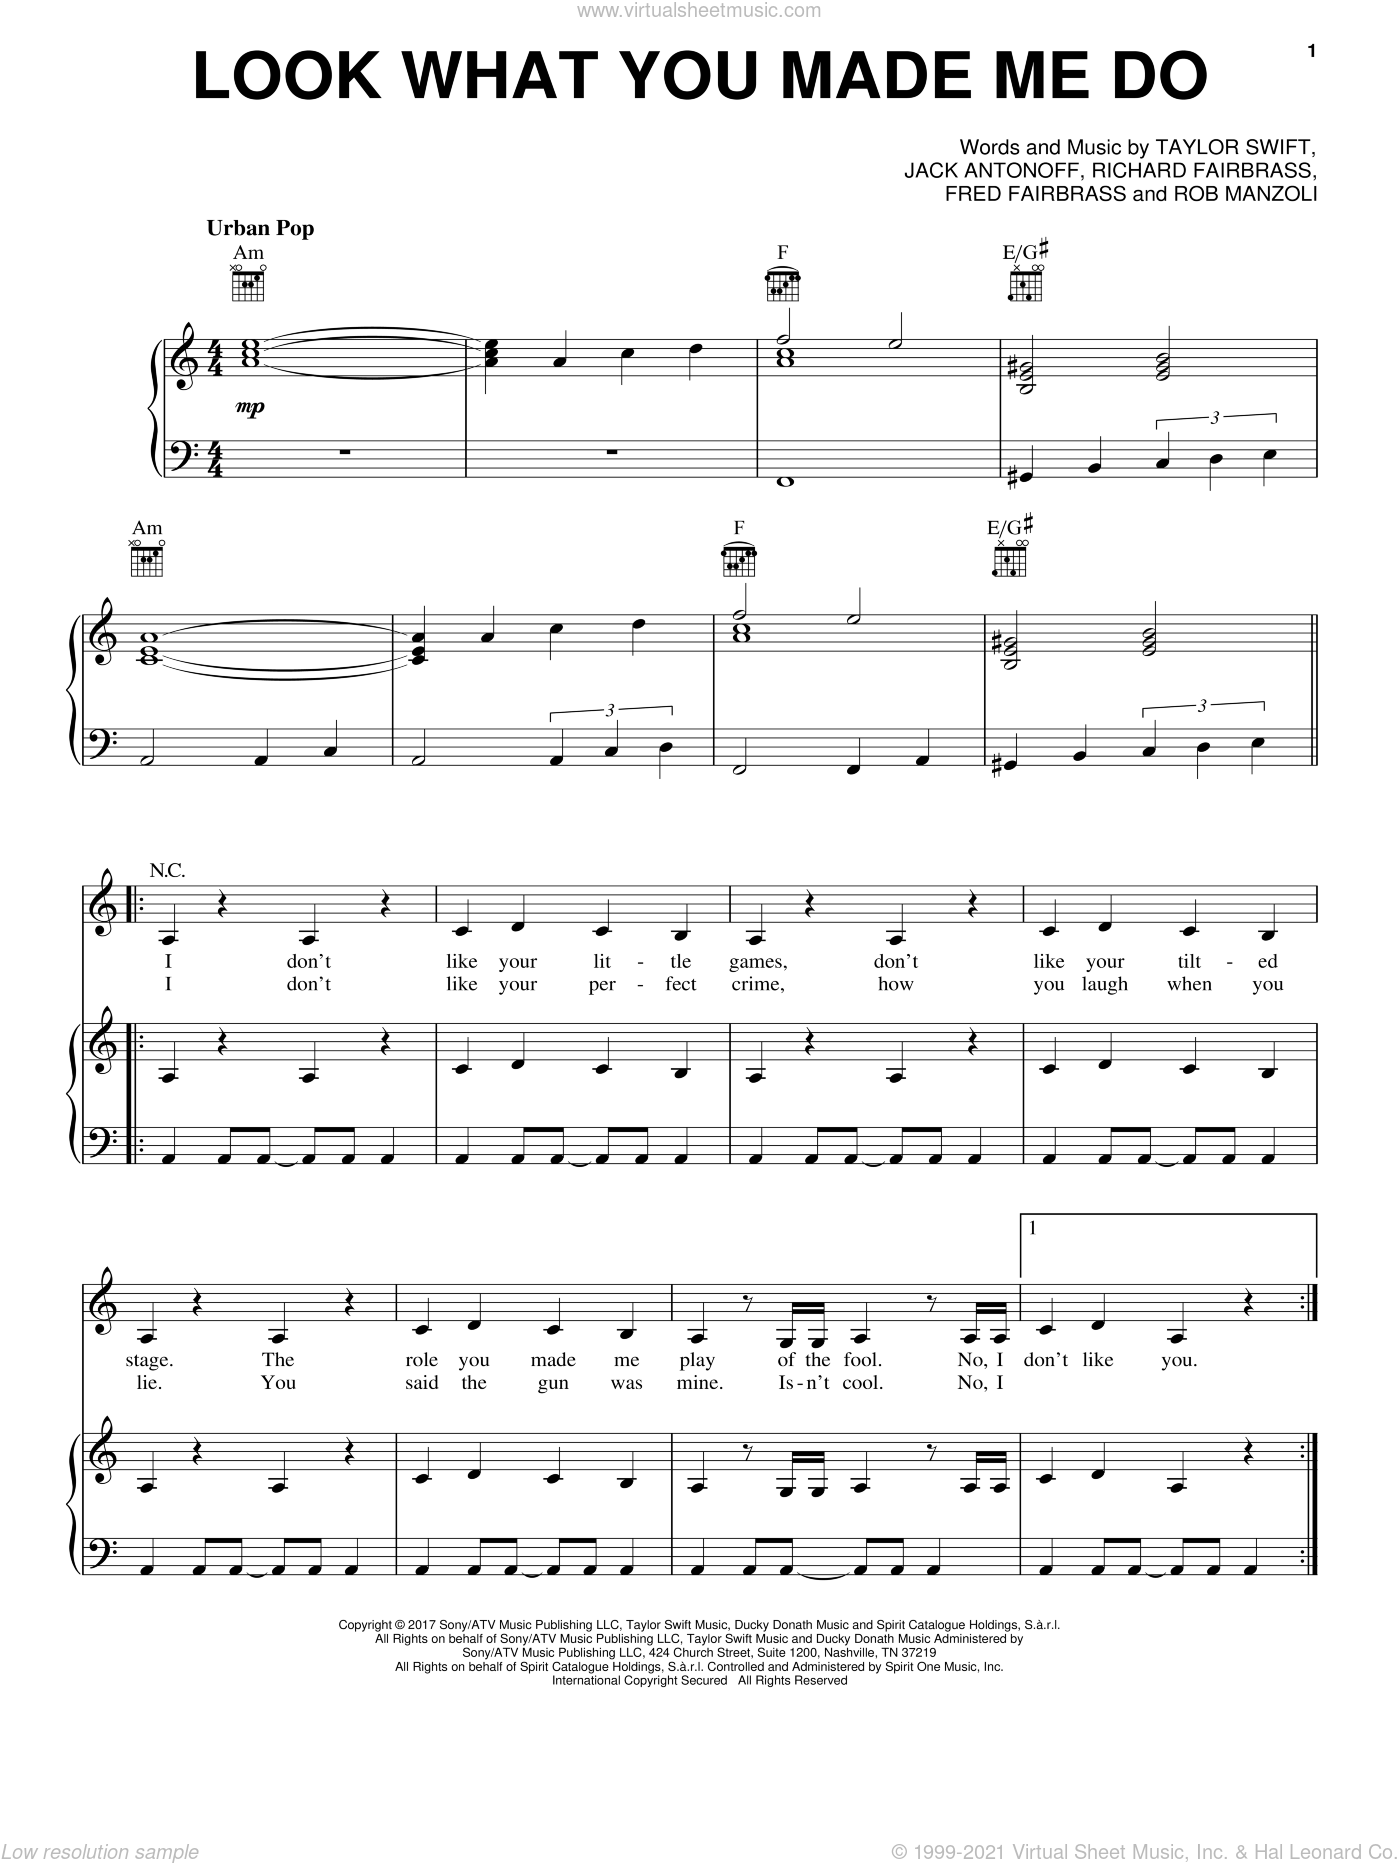 Look What You Made Me Do sheet music for voice, piano or guitar by Taylor Swift, Fred Fairbrass, Jack Antonoff, Richard Fairbrass and Rob Manzoli, intermediate skill level